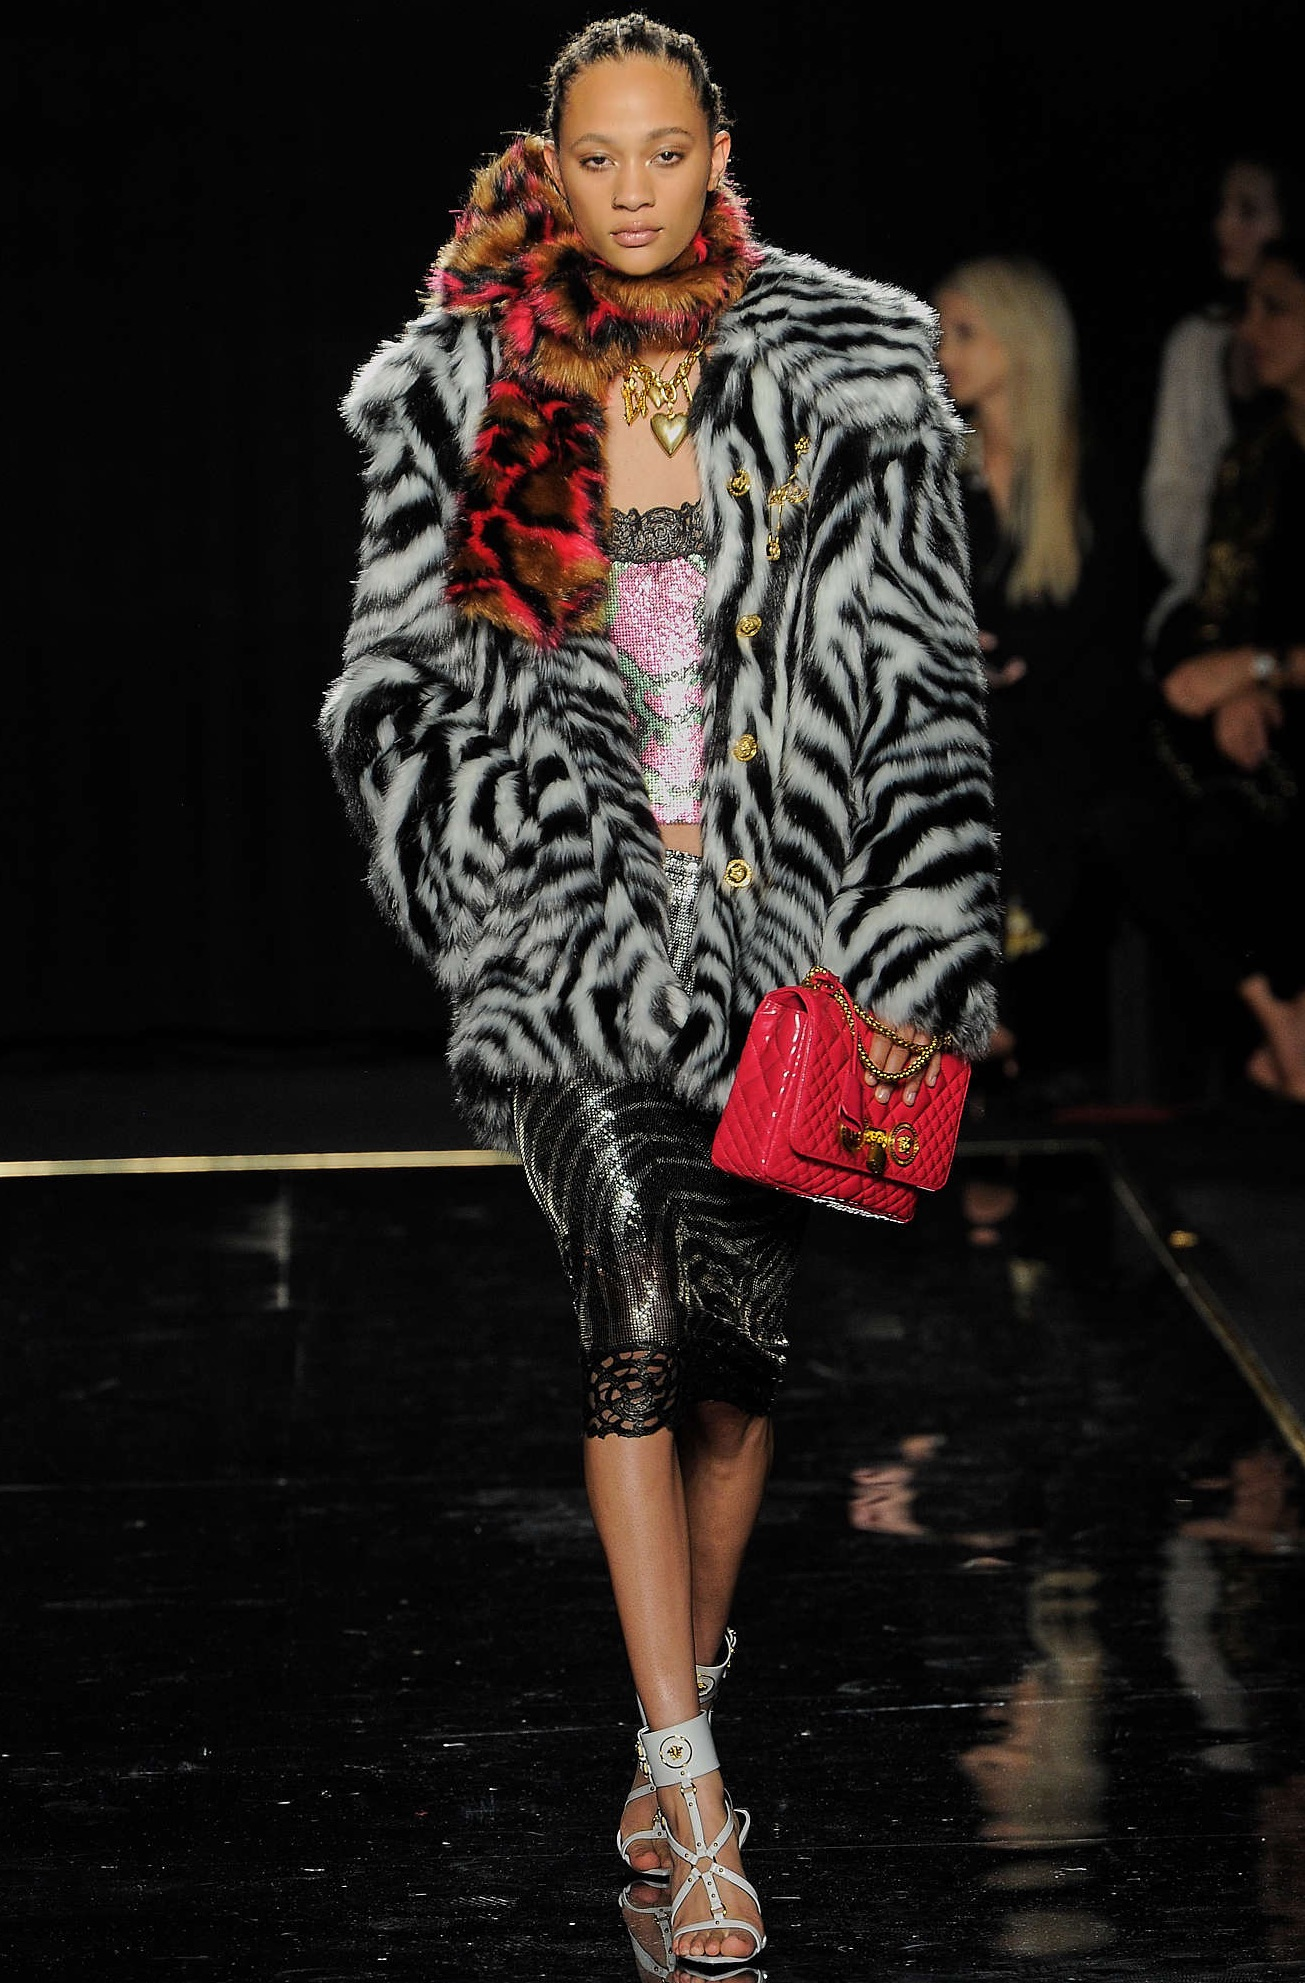 Versace Pre Fall 2019 collection is colorful, fun, exciting